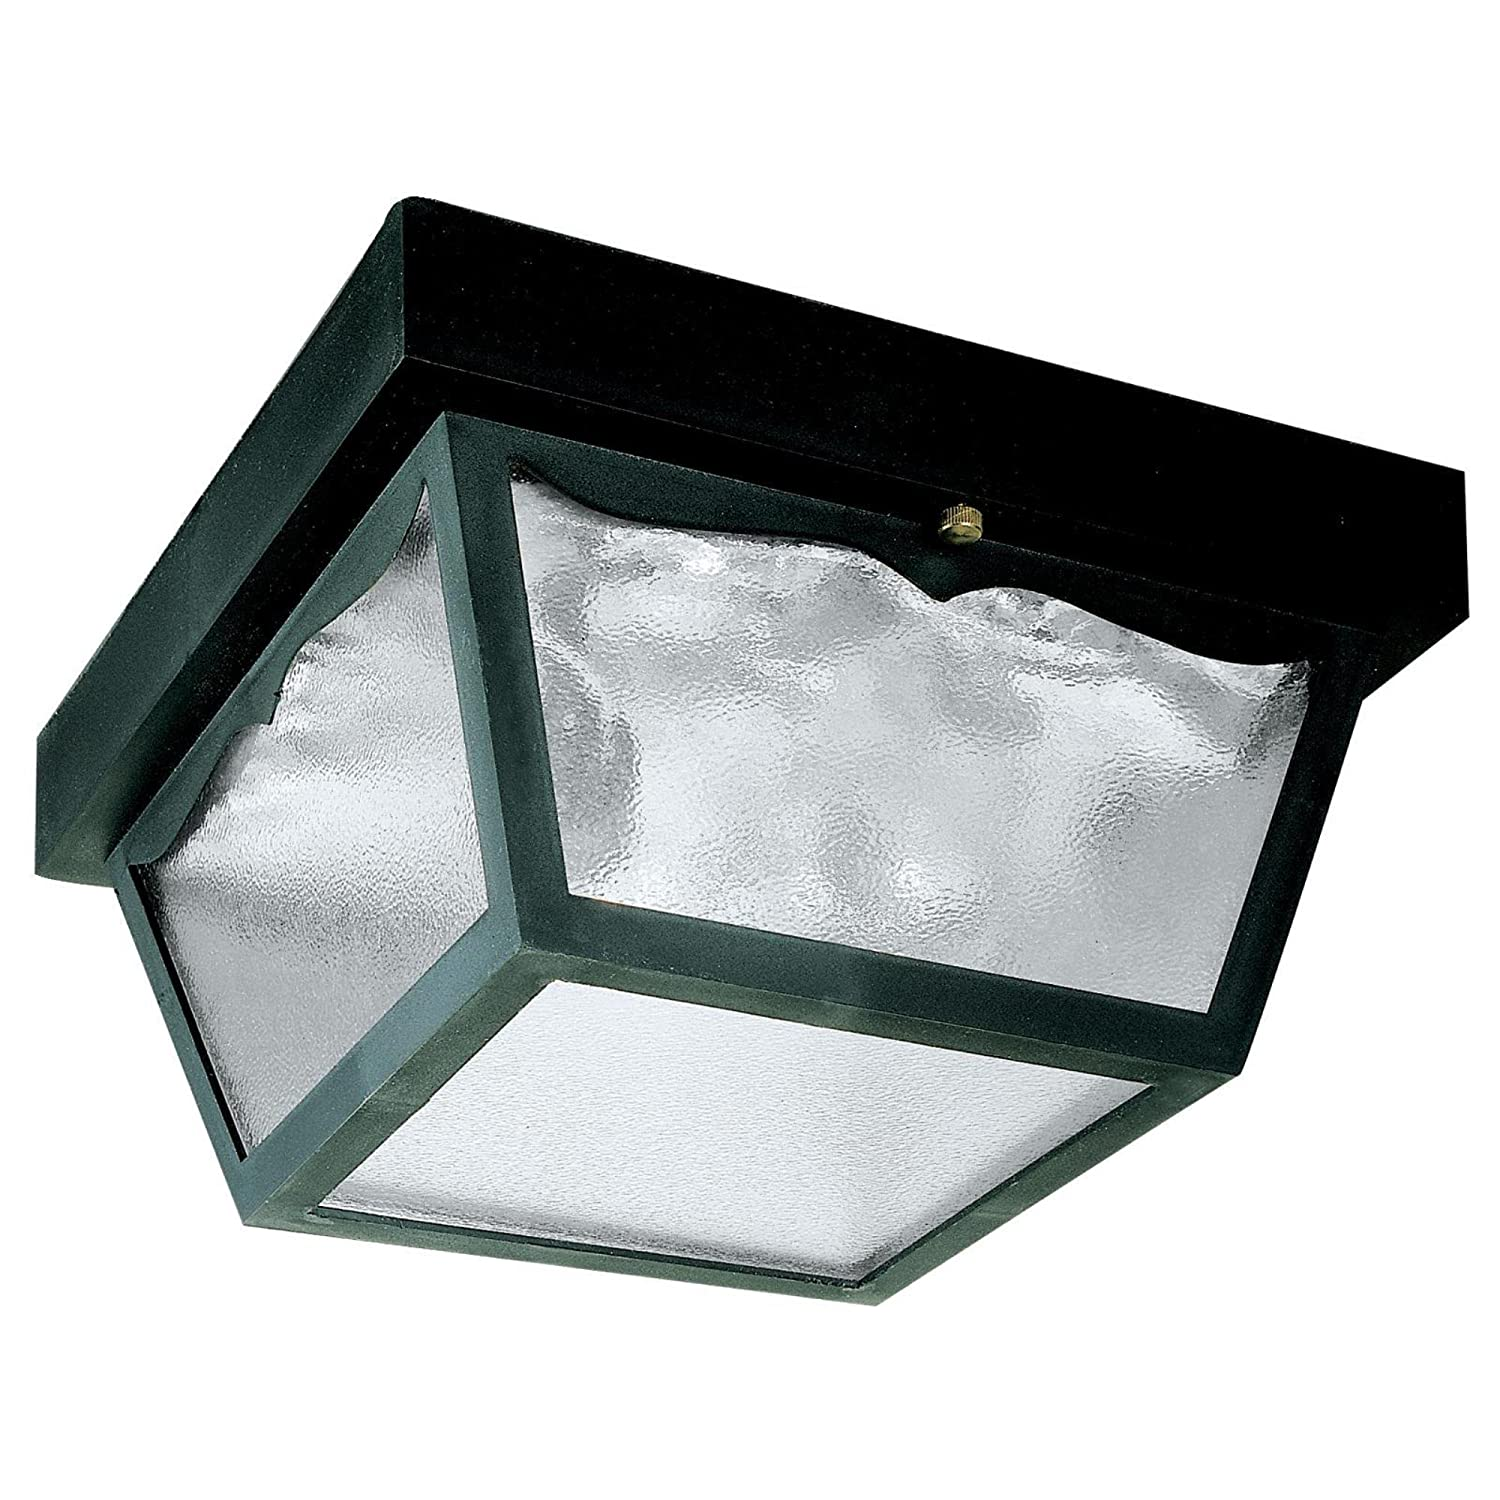 Westinghouse 6682300 2-Light Porch Clear Glass Panel